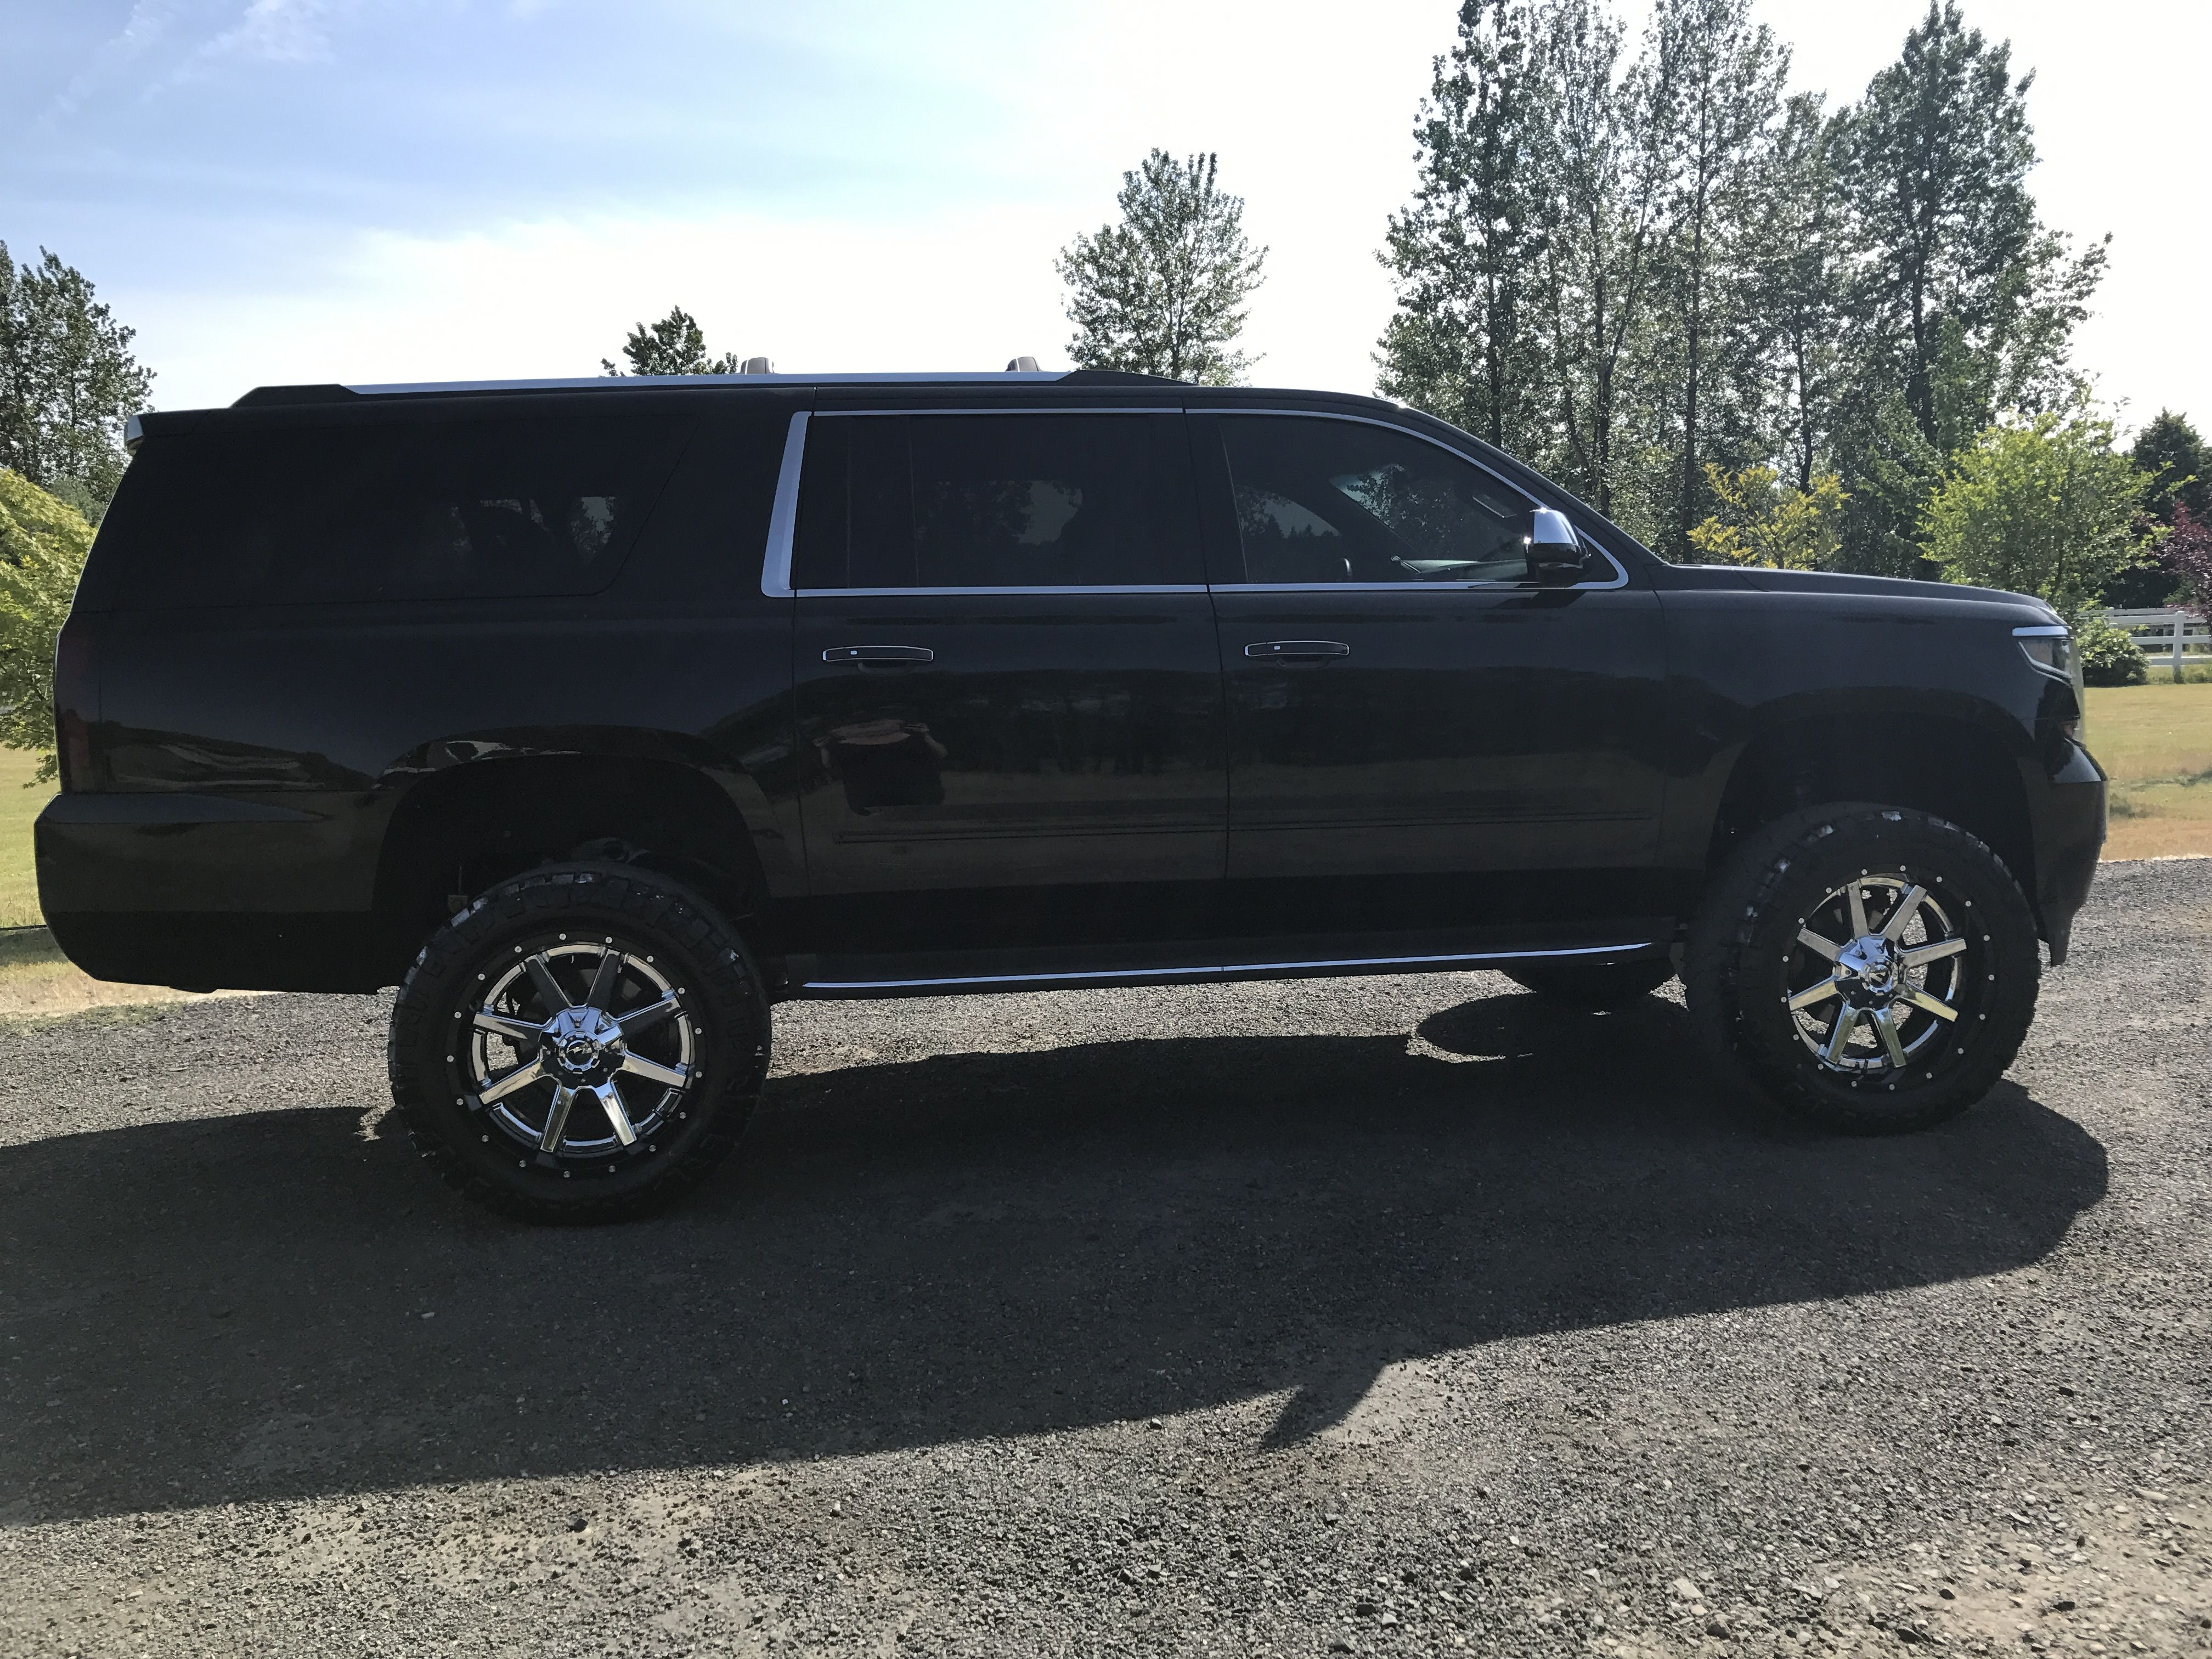 hight resolution of 2015 lifted suburban 22 fuel rims on 35 tires 6 fabtech lift